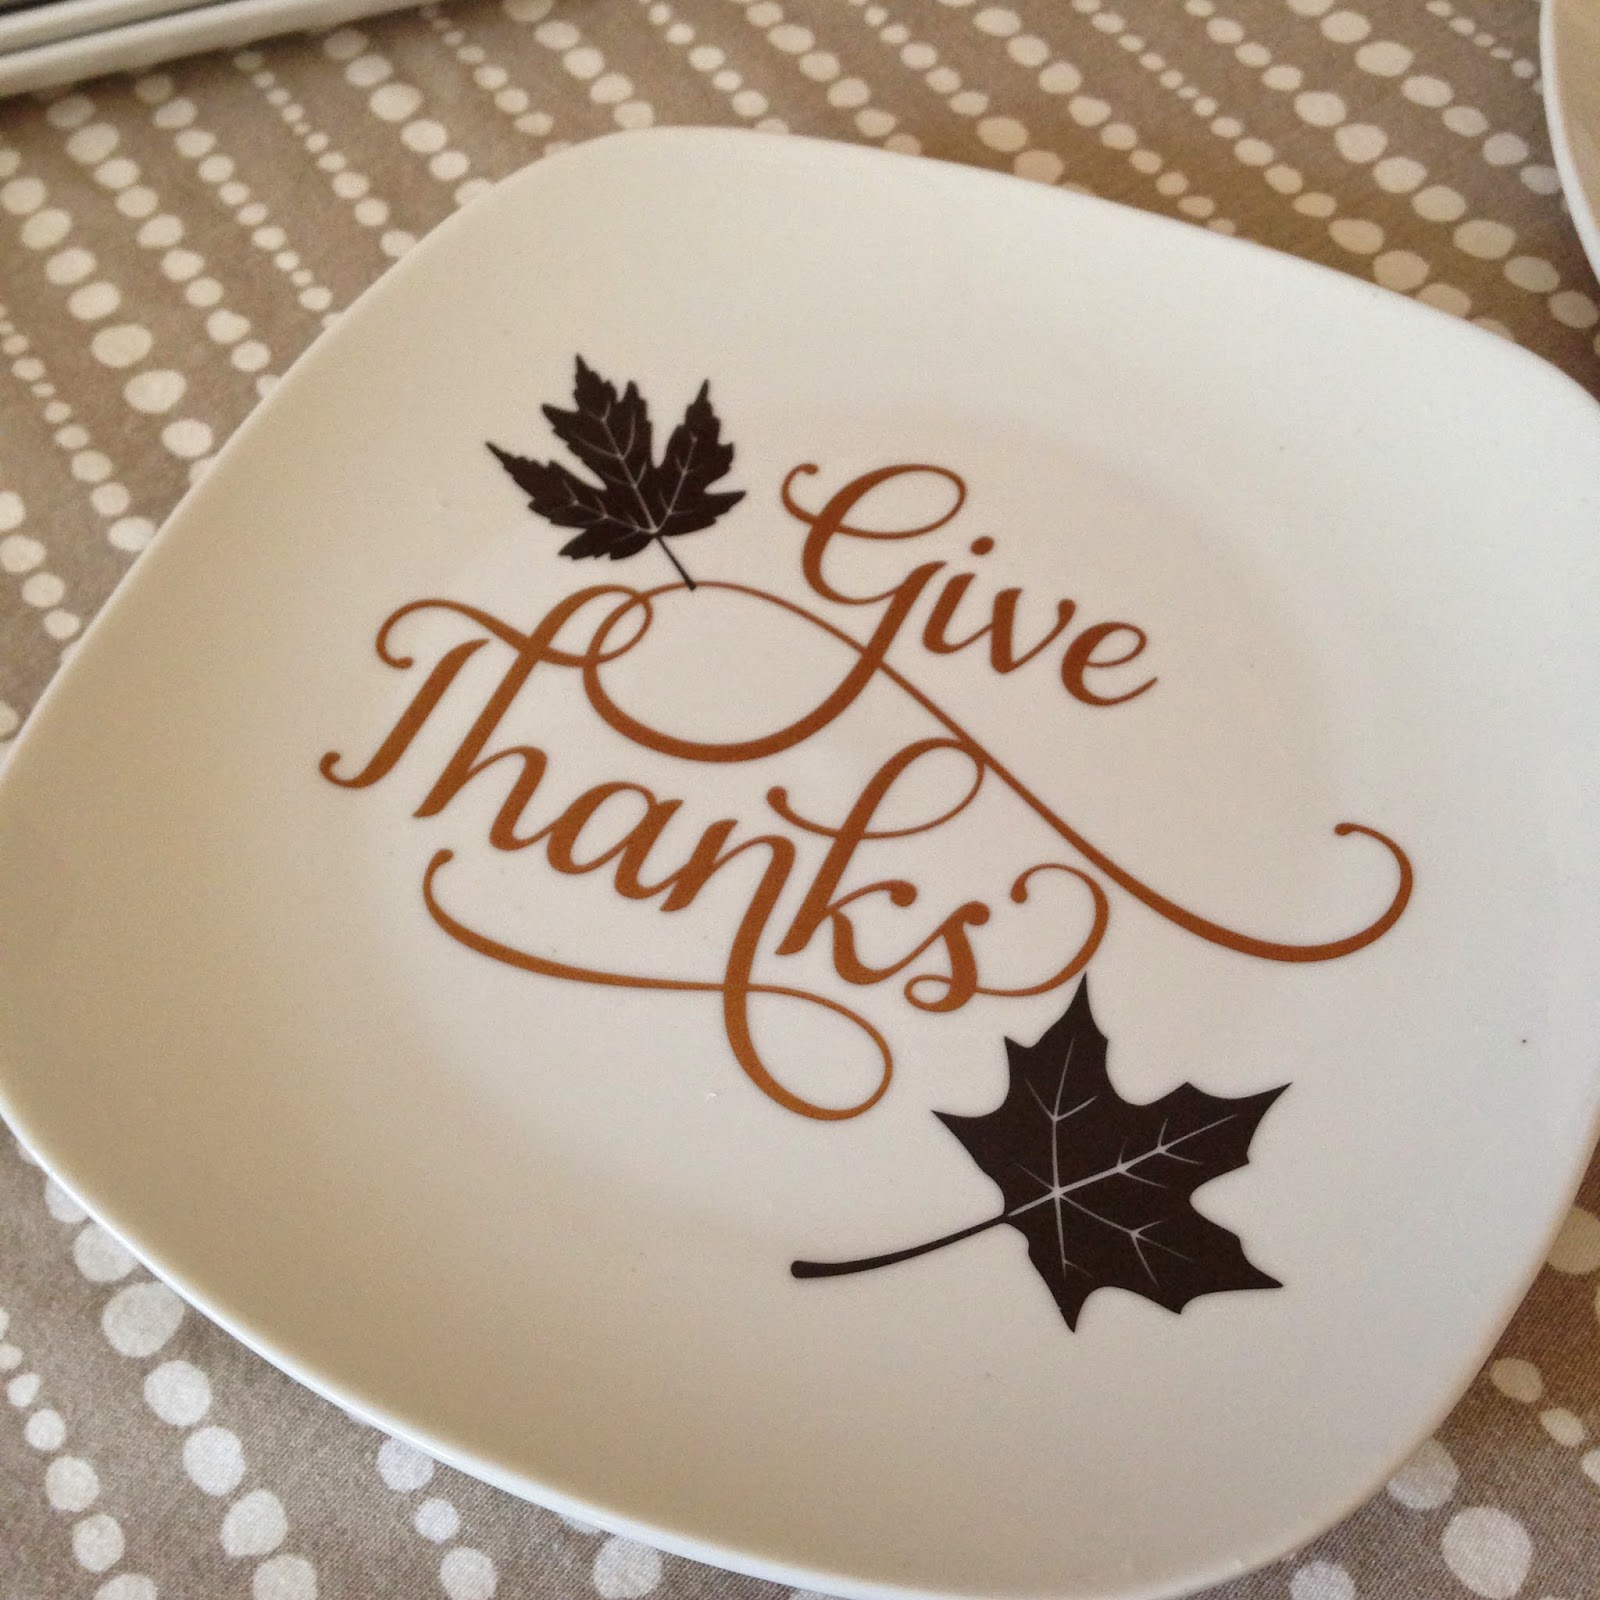 DIY, do it yourself, $1, thanksgiving, decorative plates